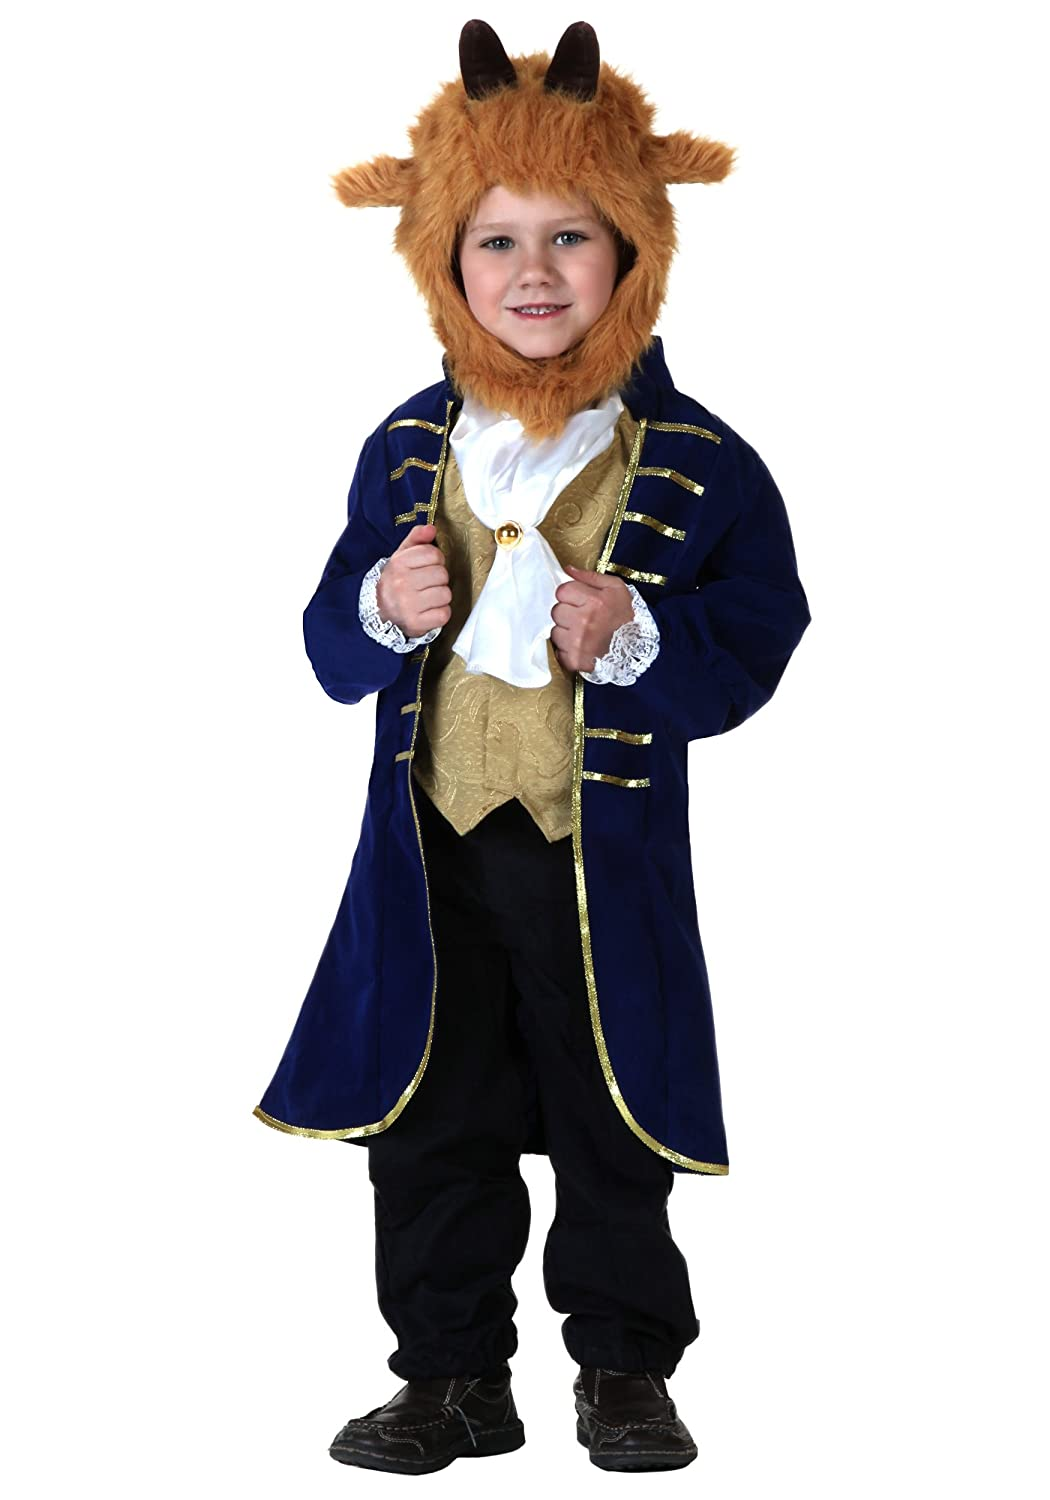 Little Boys Beast Costume from Beauty and the Beast